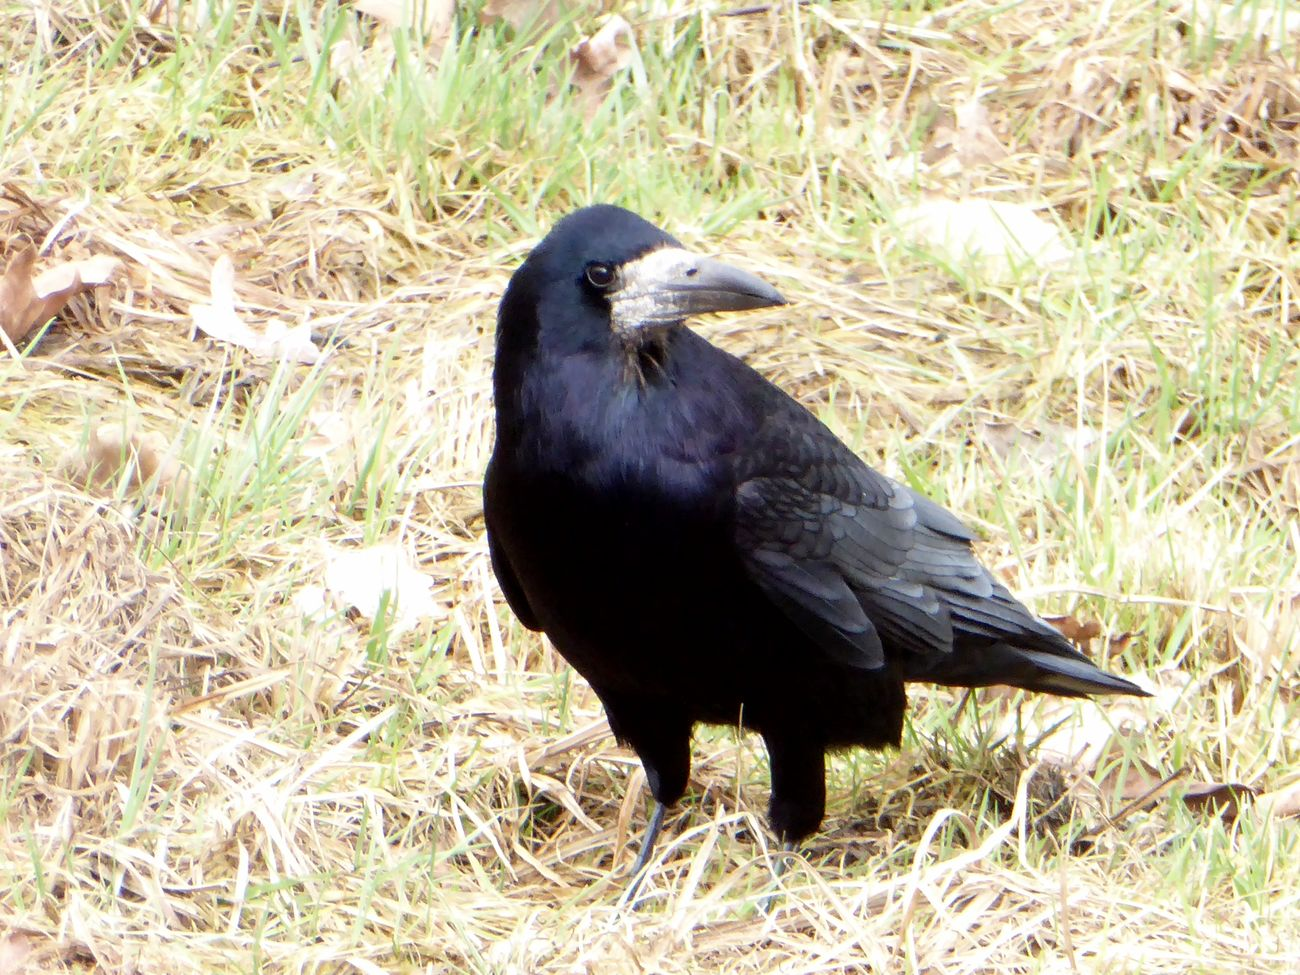 my favorite ravenbirds😍 Animal Themes Animals In The Wild Animal Wildlife Nature Raven - Bird Crow Stormy Weather ☔ Beauty In Nature For My Friends 😍😘🎁 Tranquil Scene Animal Posing